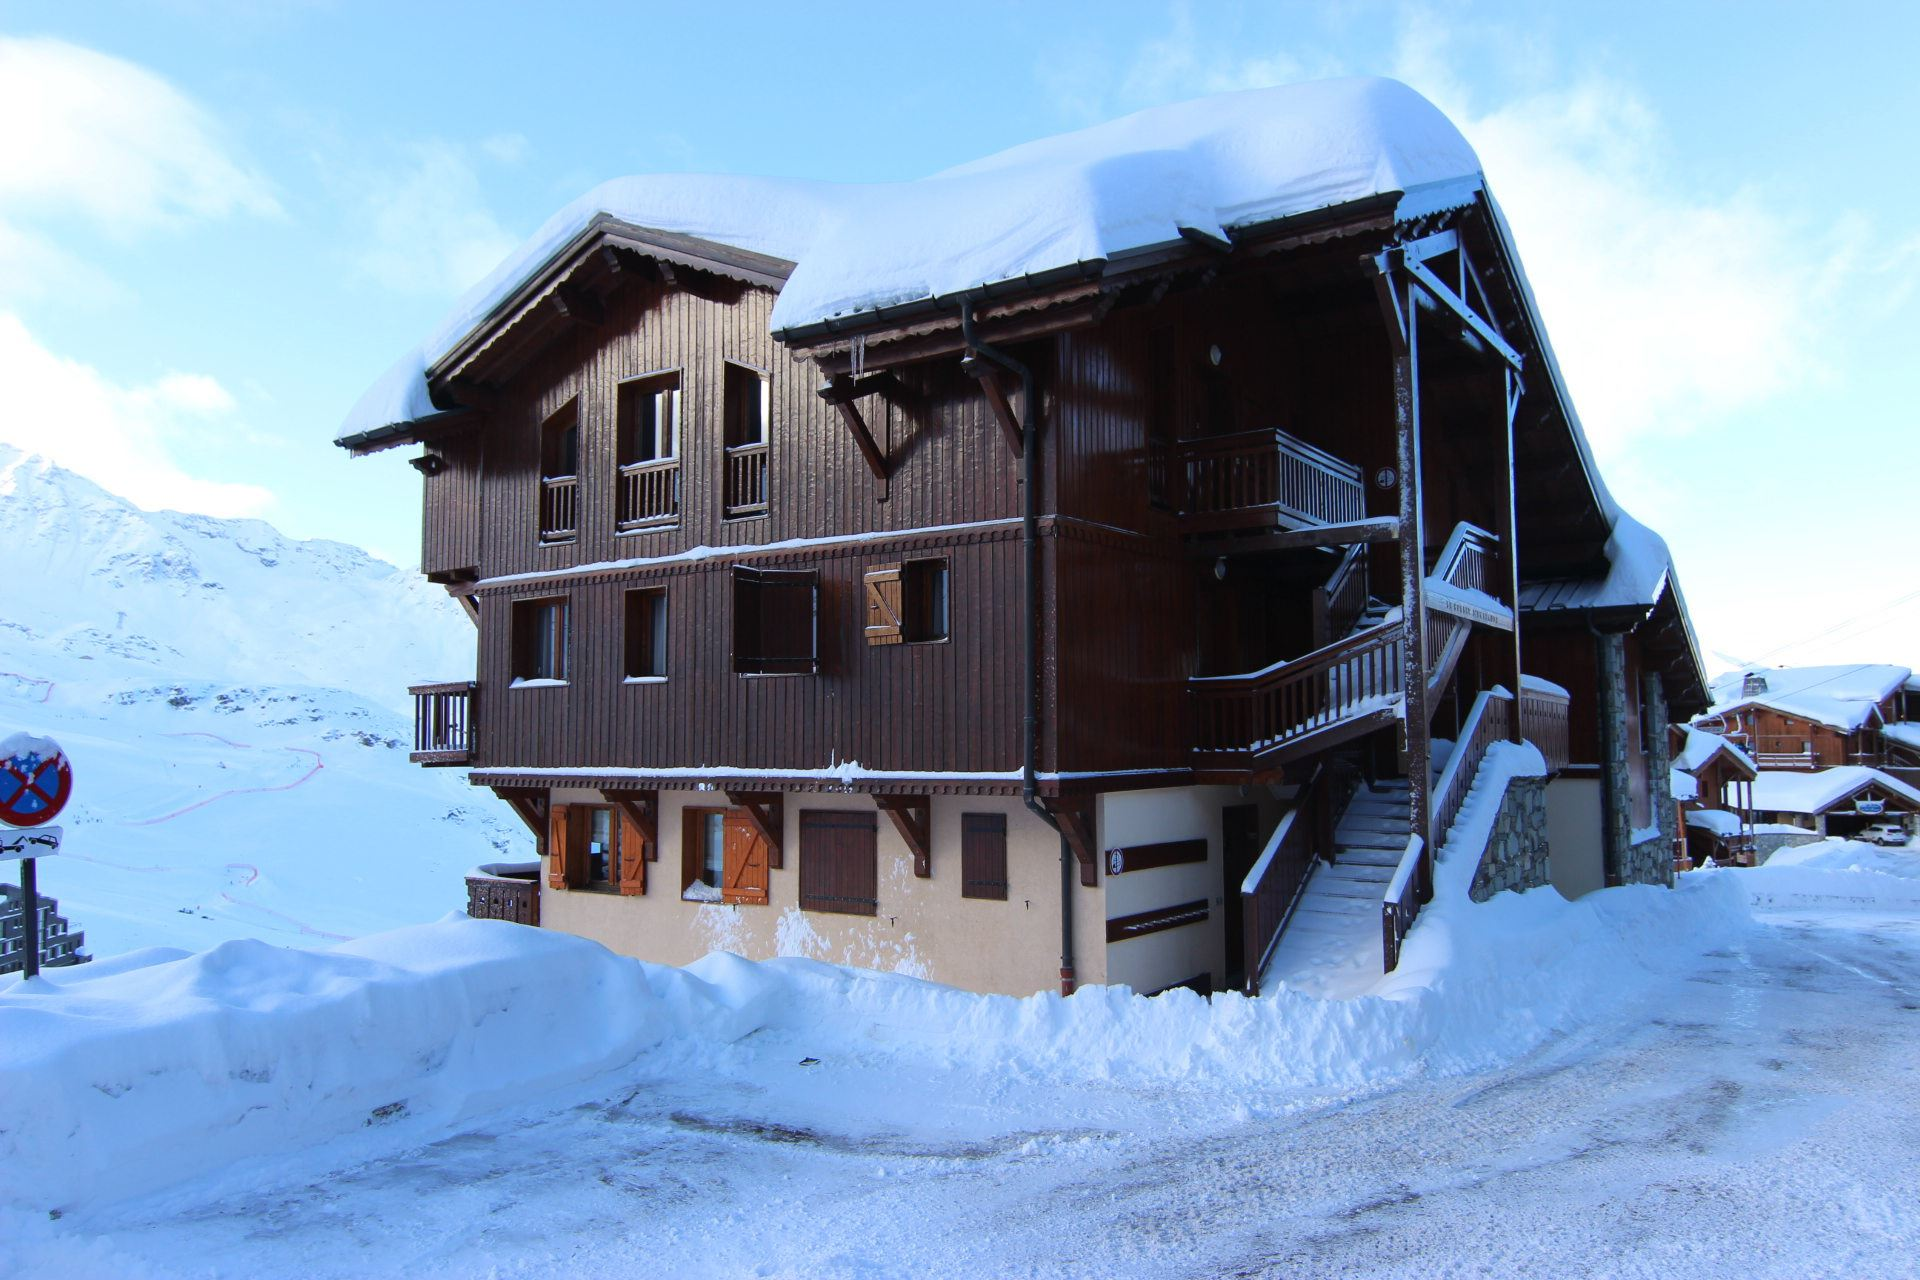 CHALET EMERAUDE 5 / 4 PIECES 8 PERSONNES - 3 FLOCONS OR - VTI